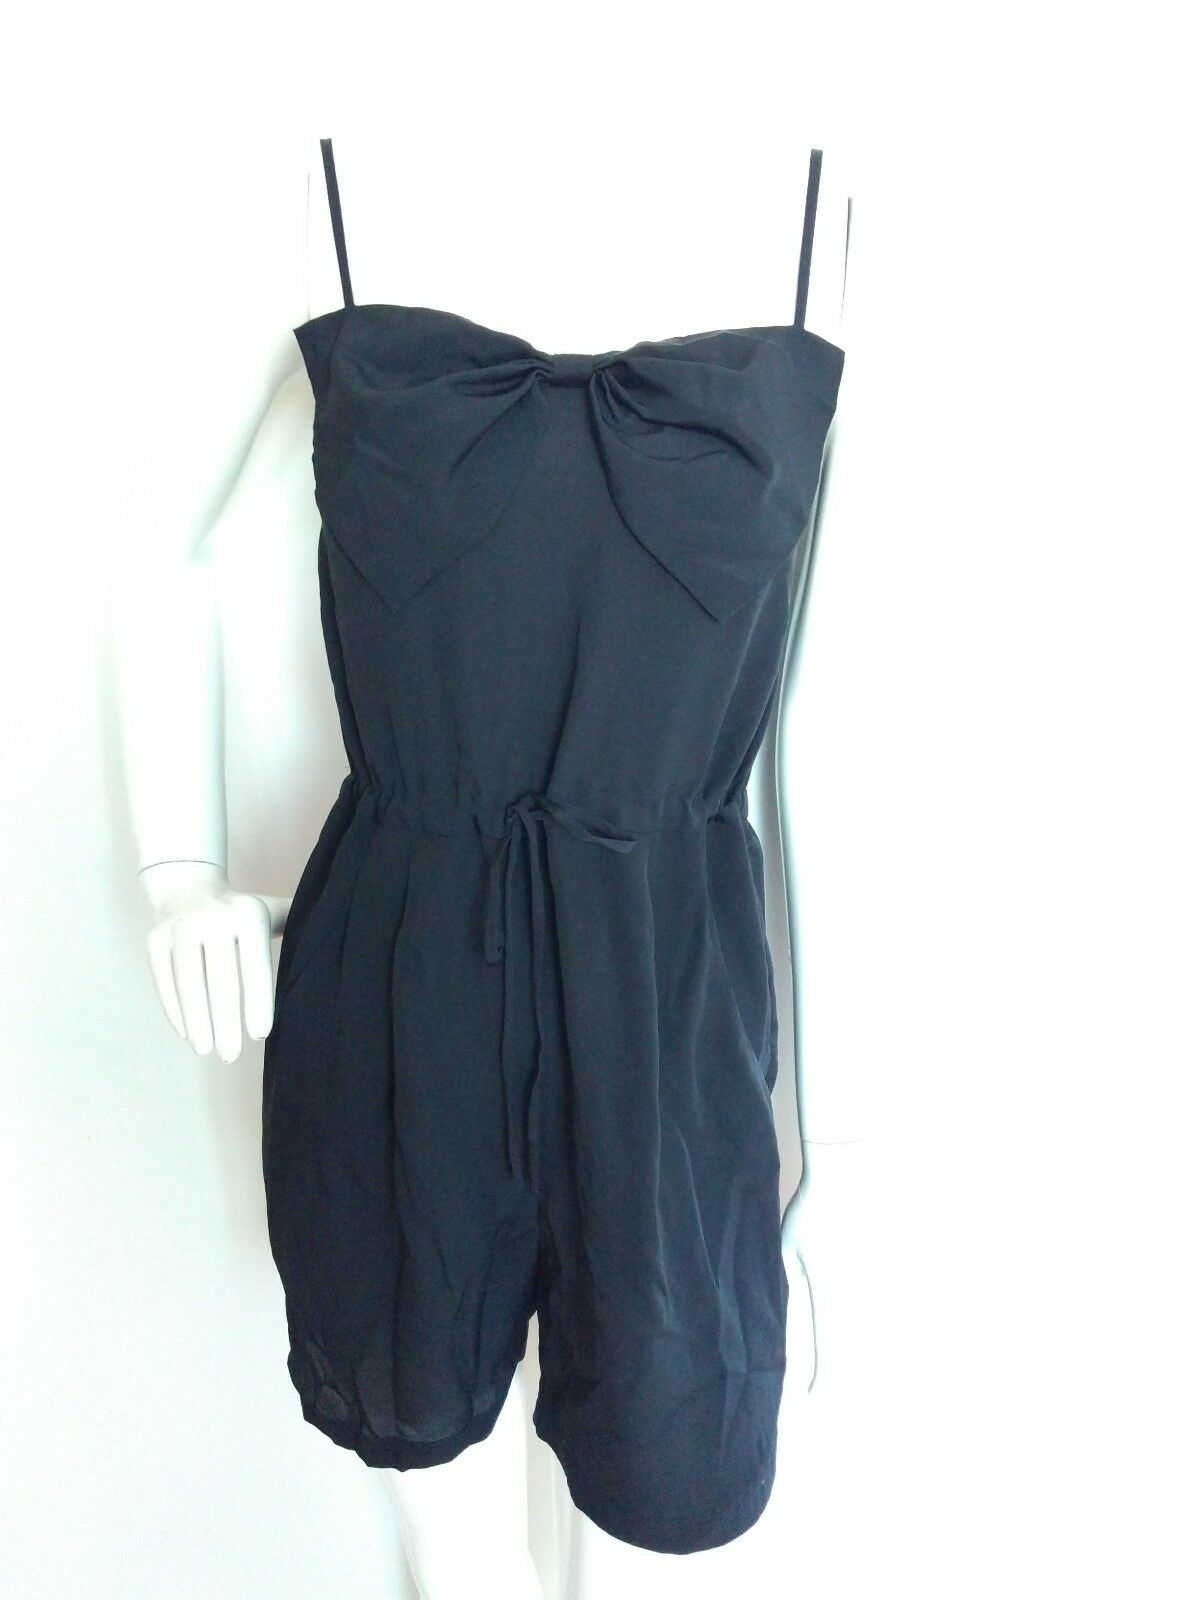 NW3 by HOBBS playsuit romper Größe 6 --BRAND NEW--navy strappy bow detail pockets